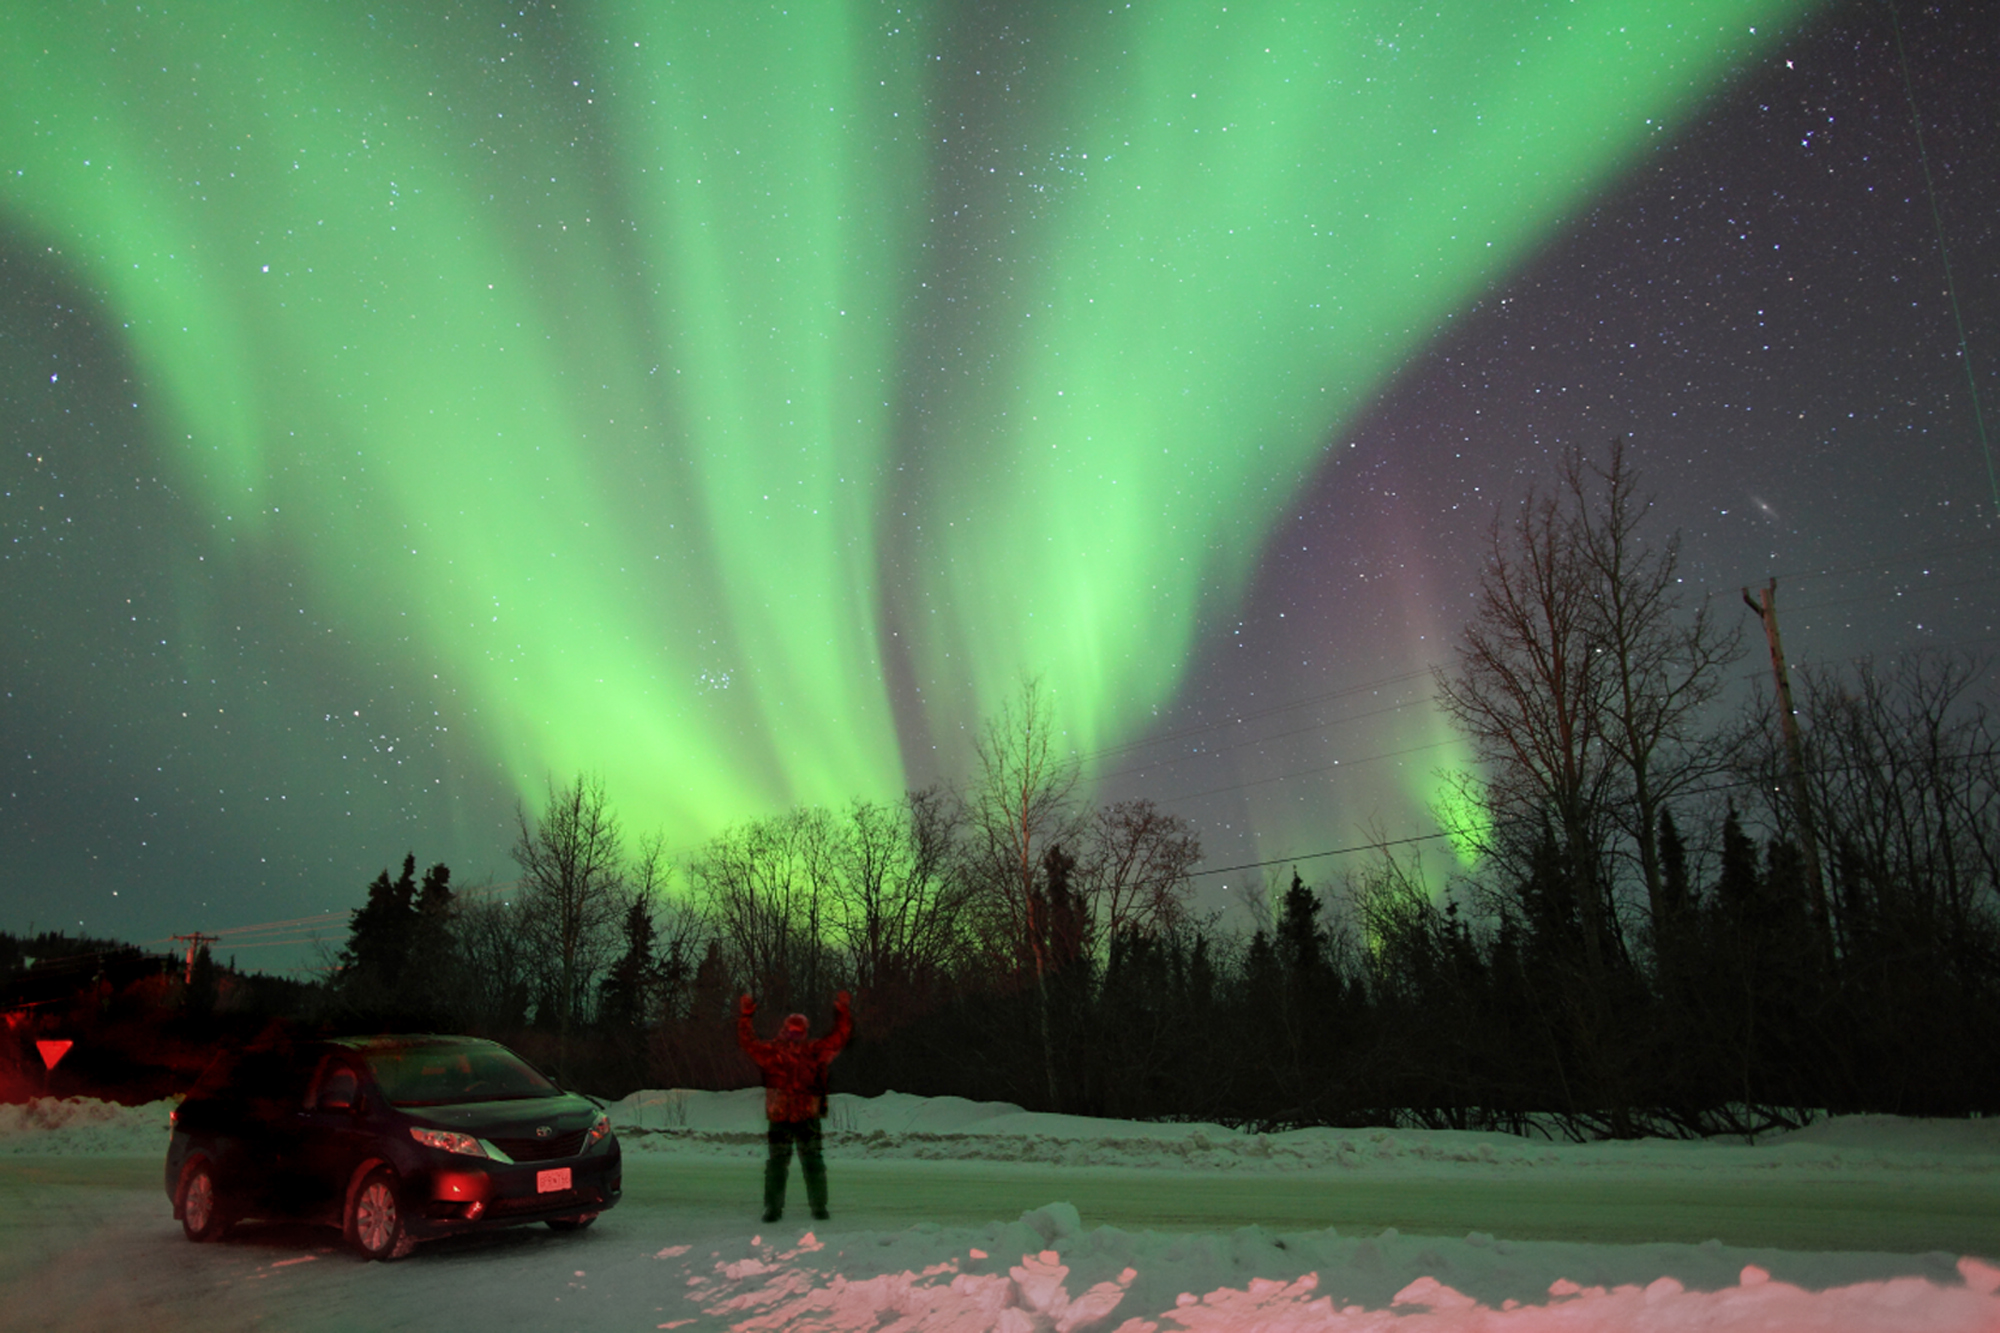 The first day we were in Fairbanks, Alaska we had the Aurora. This was before the photo tour began and the start of 13 nights in a row of the lights.